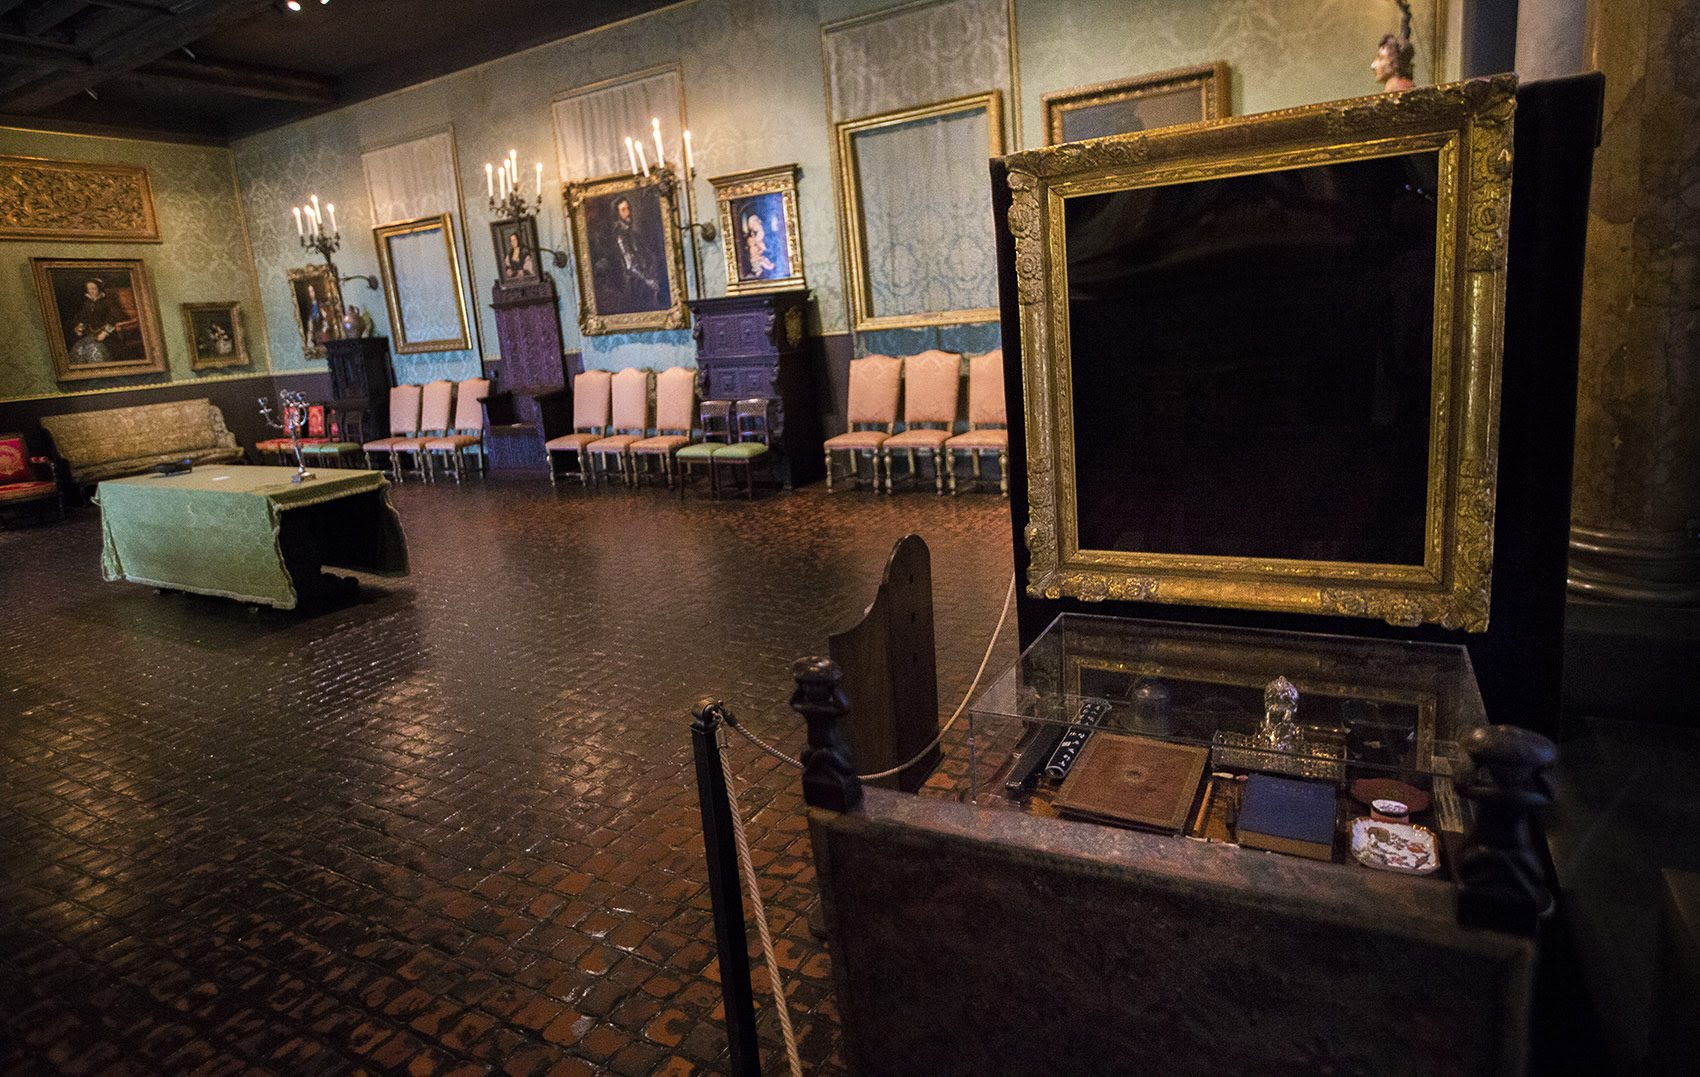 The Isabella Stewart Gardner Museum's Dutch Room, where thieves stole three Rembrandts, a Vermeer, a painting by Govaert Flinck and an ancient Chinese beaker. Photo by Jesse Costa for WBUR